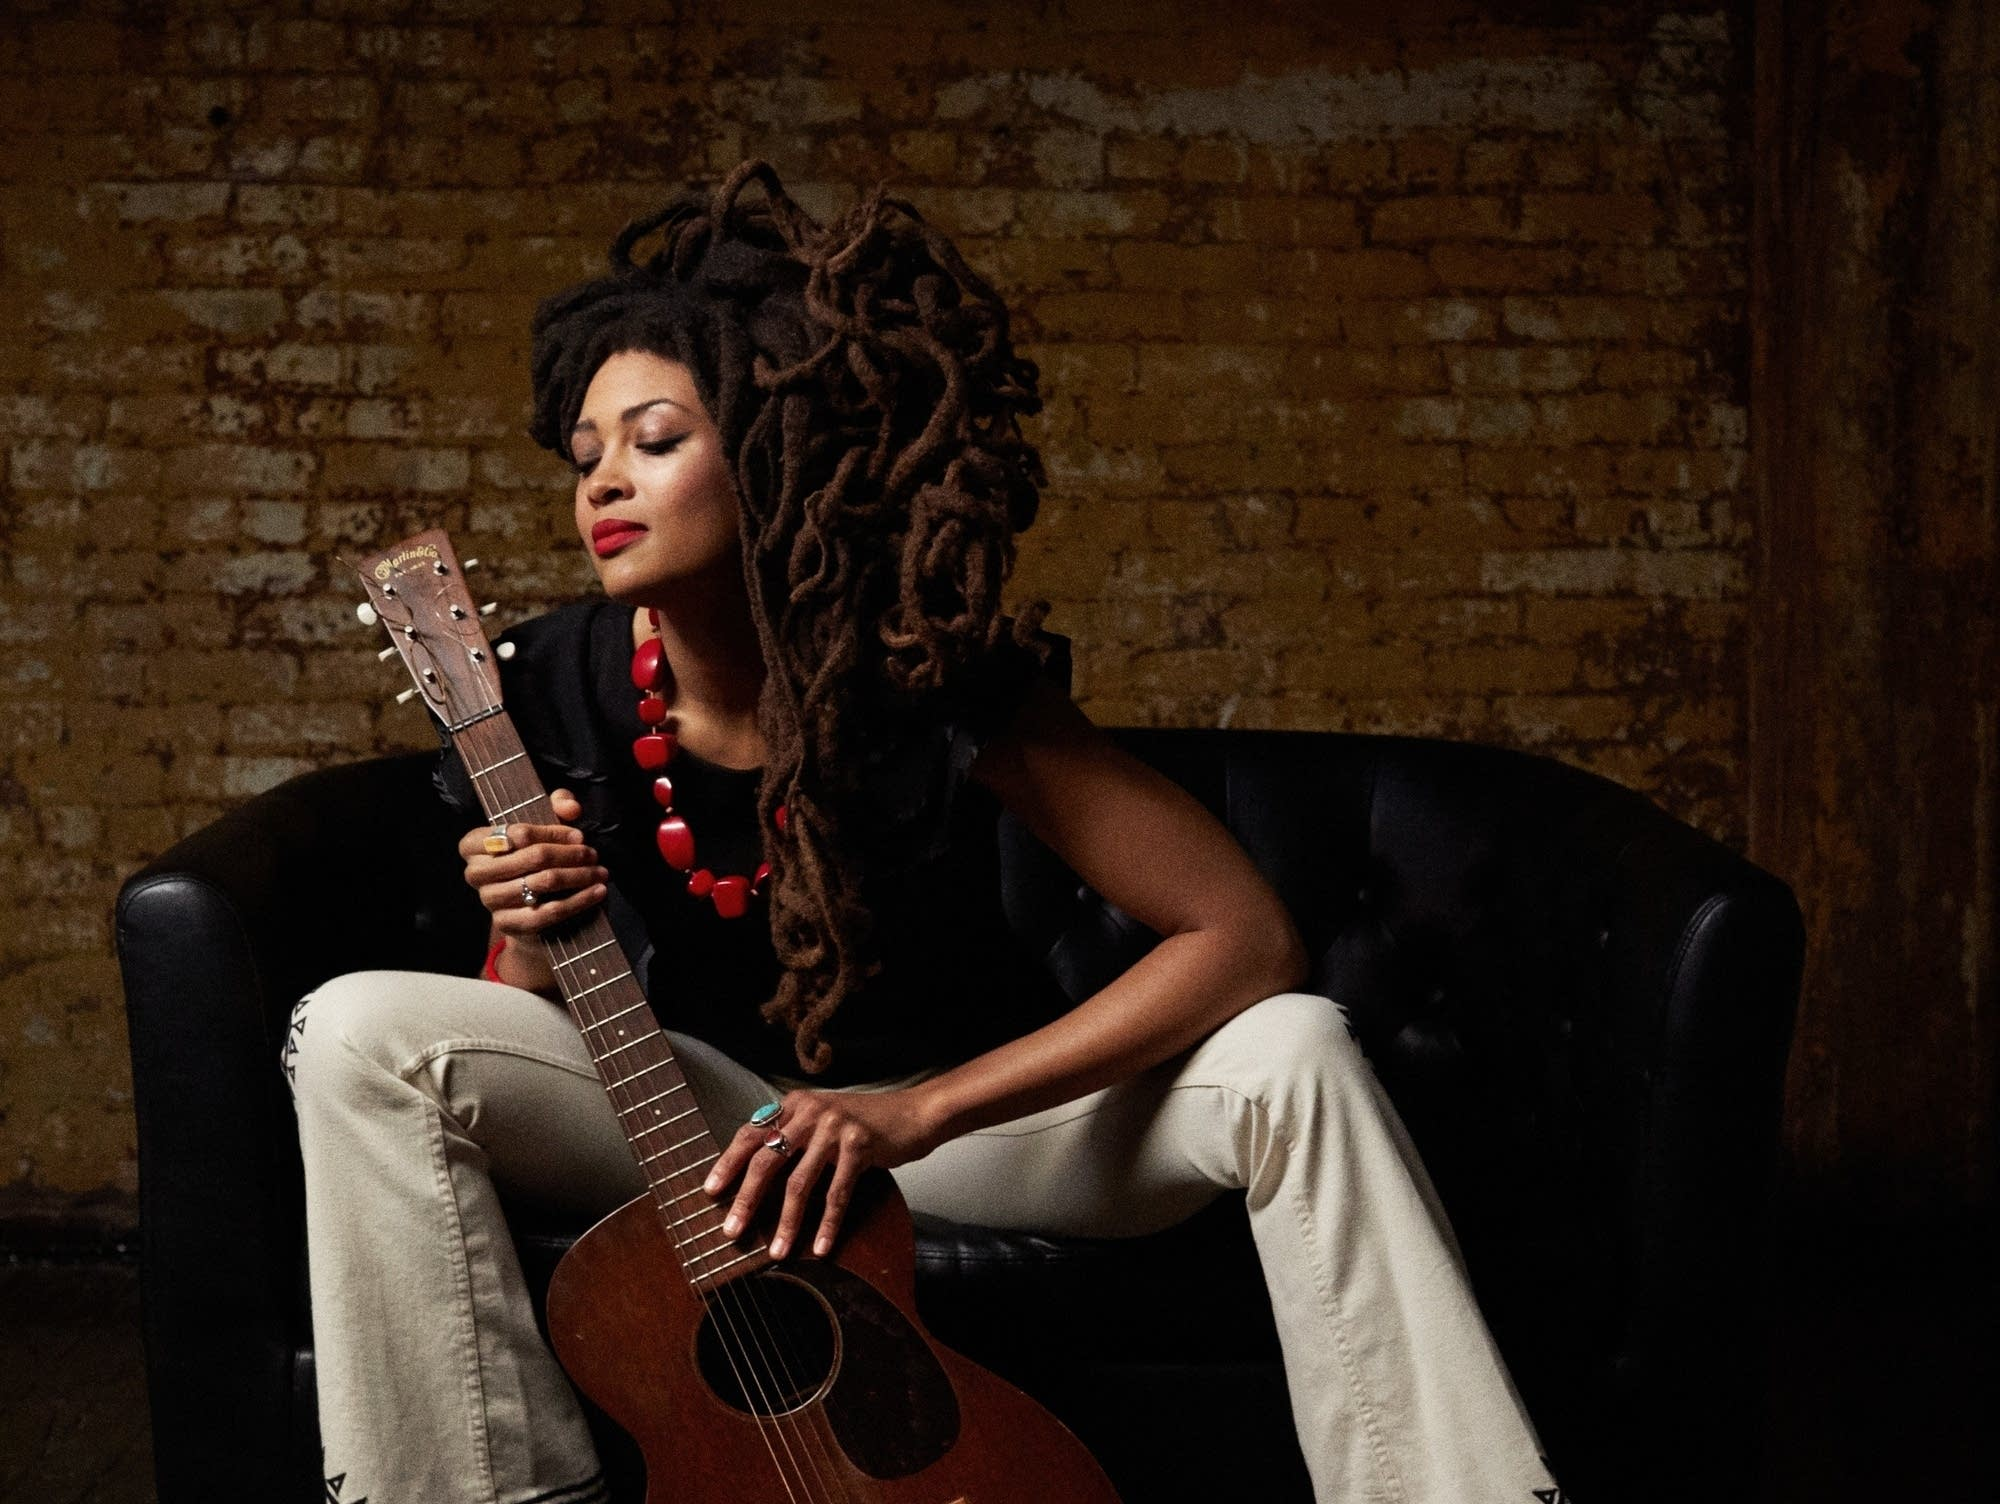 Valerie June portrait by Danny Clinch